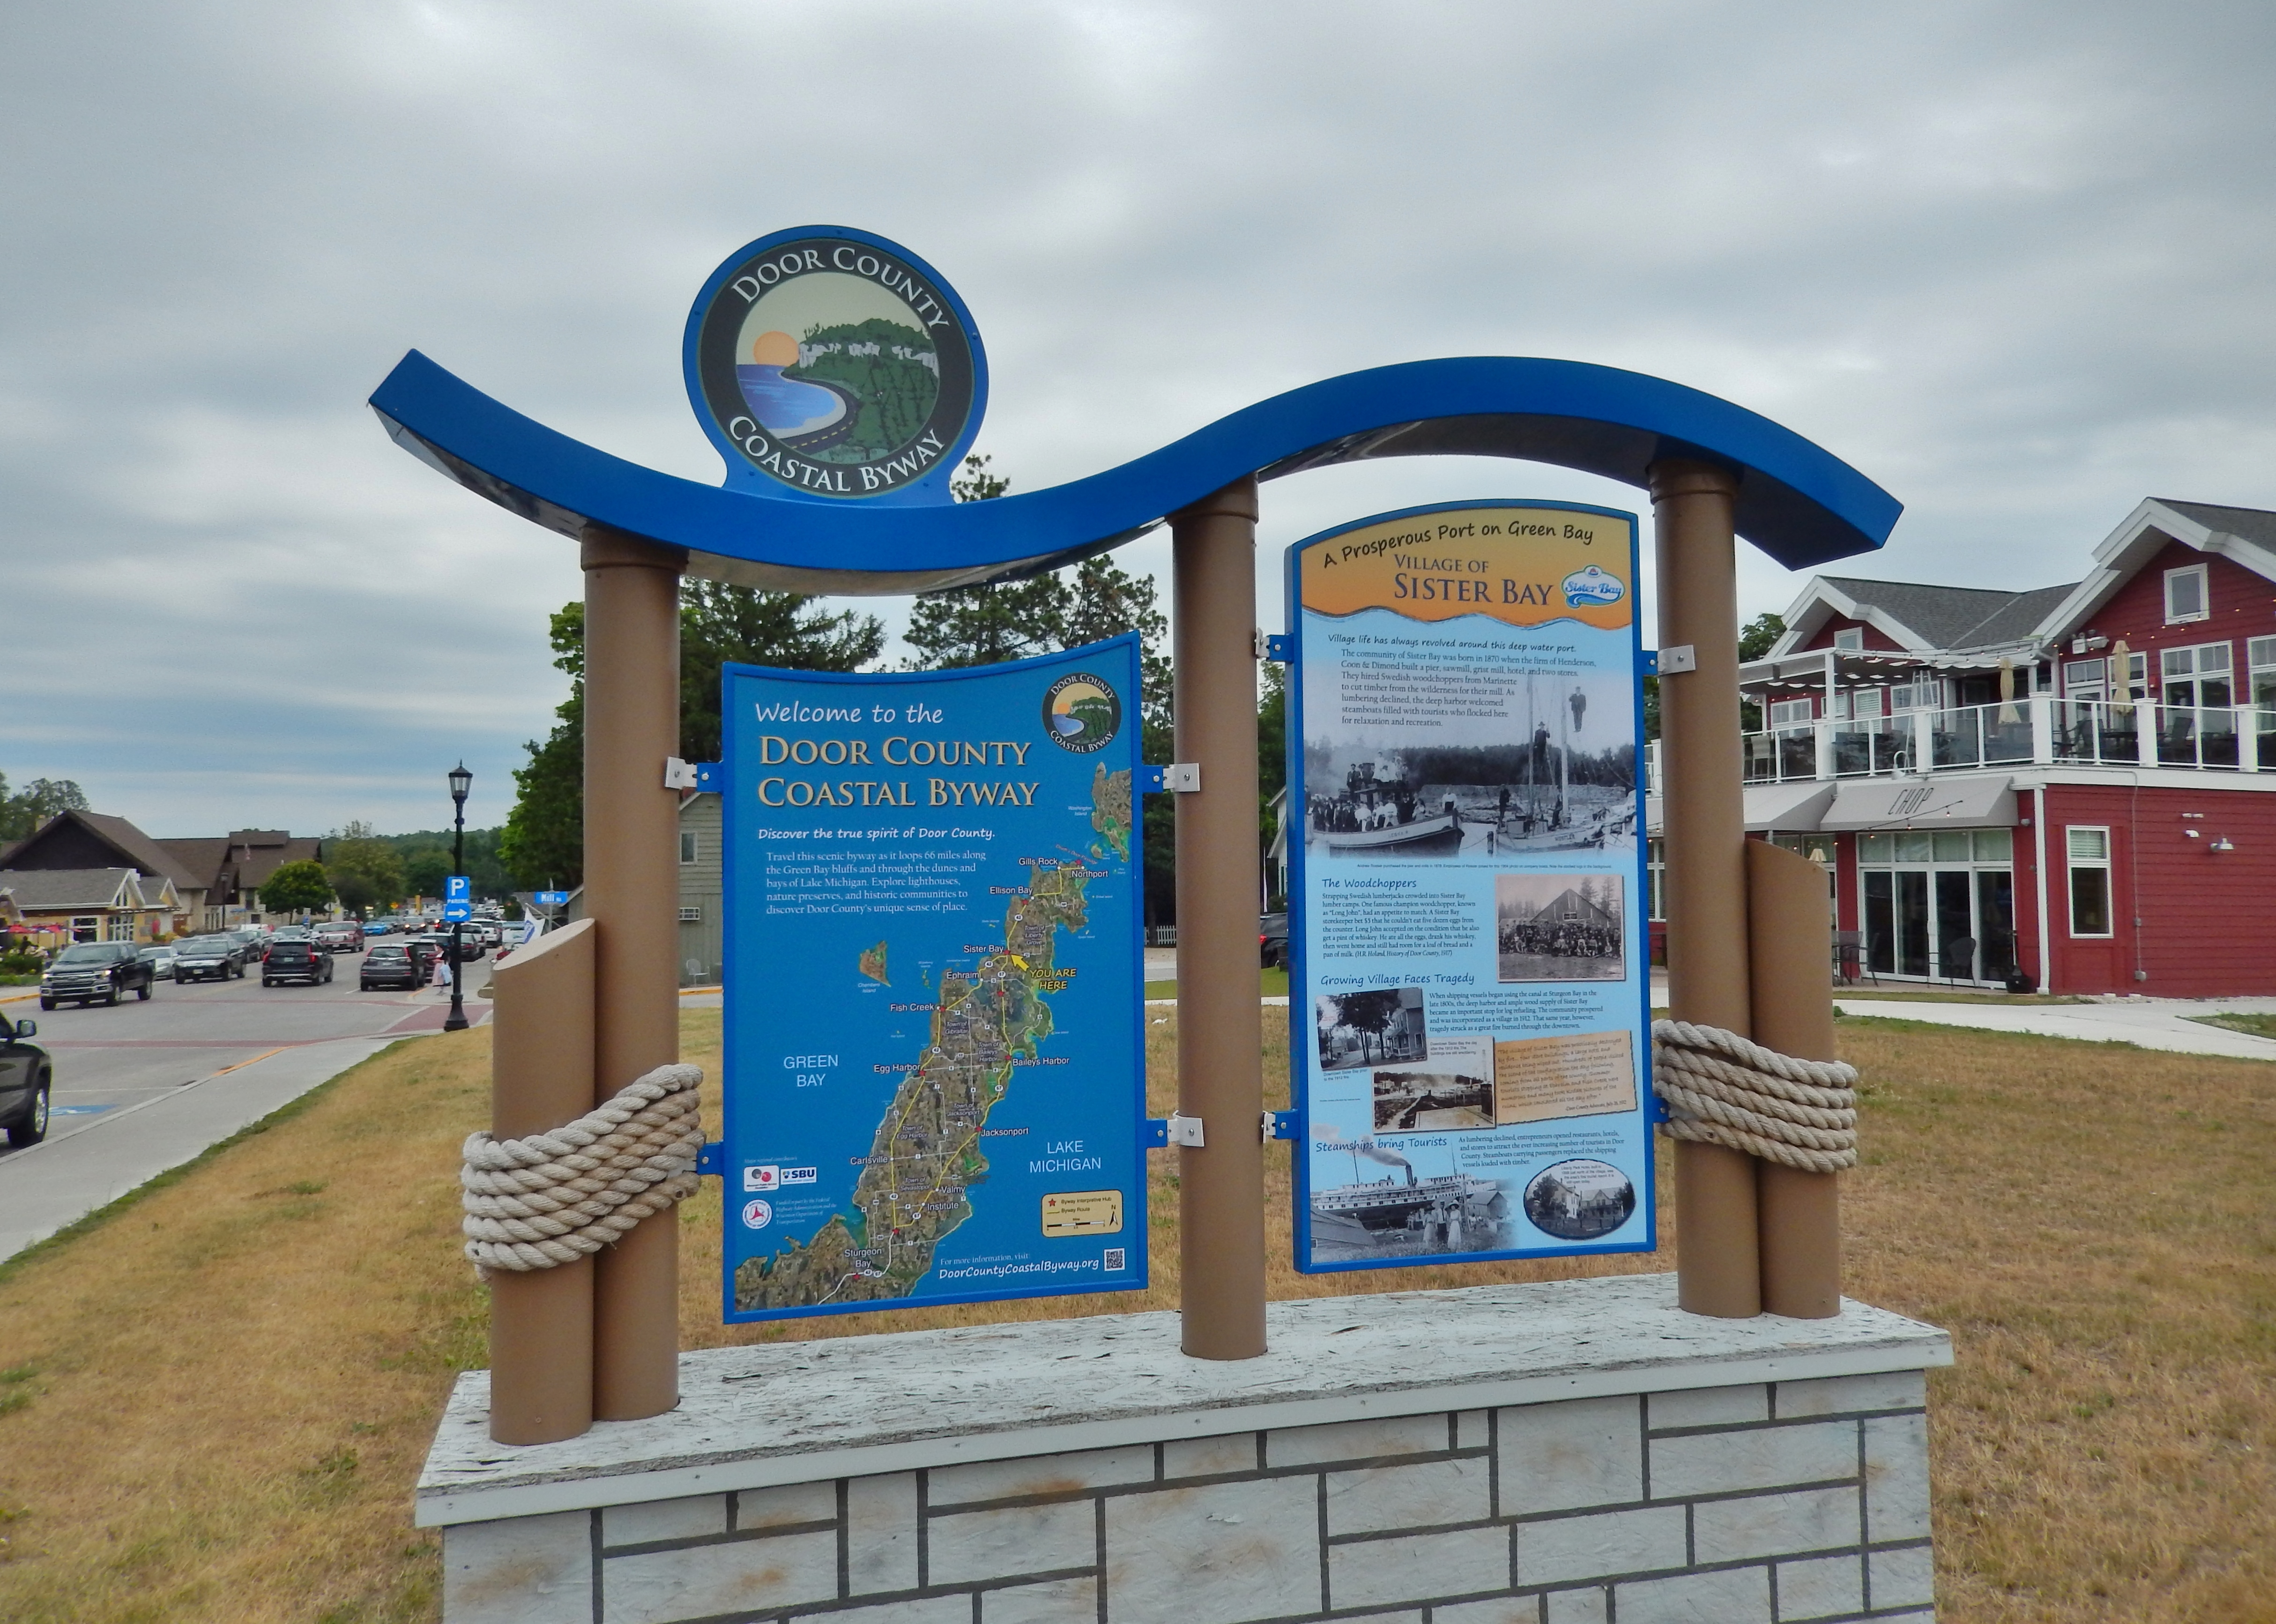 Village of Sister Bay Marker Kiosk (<i>wide view looking north; Bay Shore Drive on left</i>)